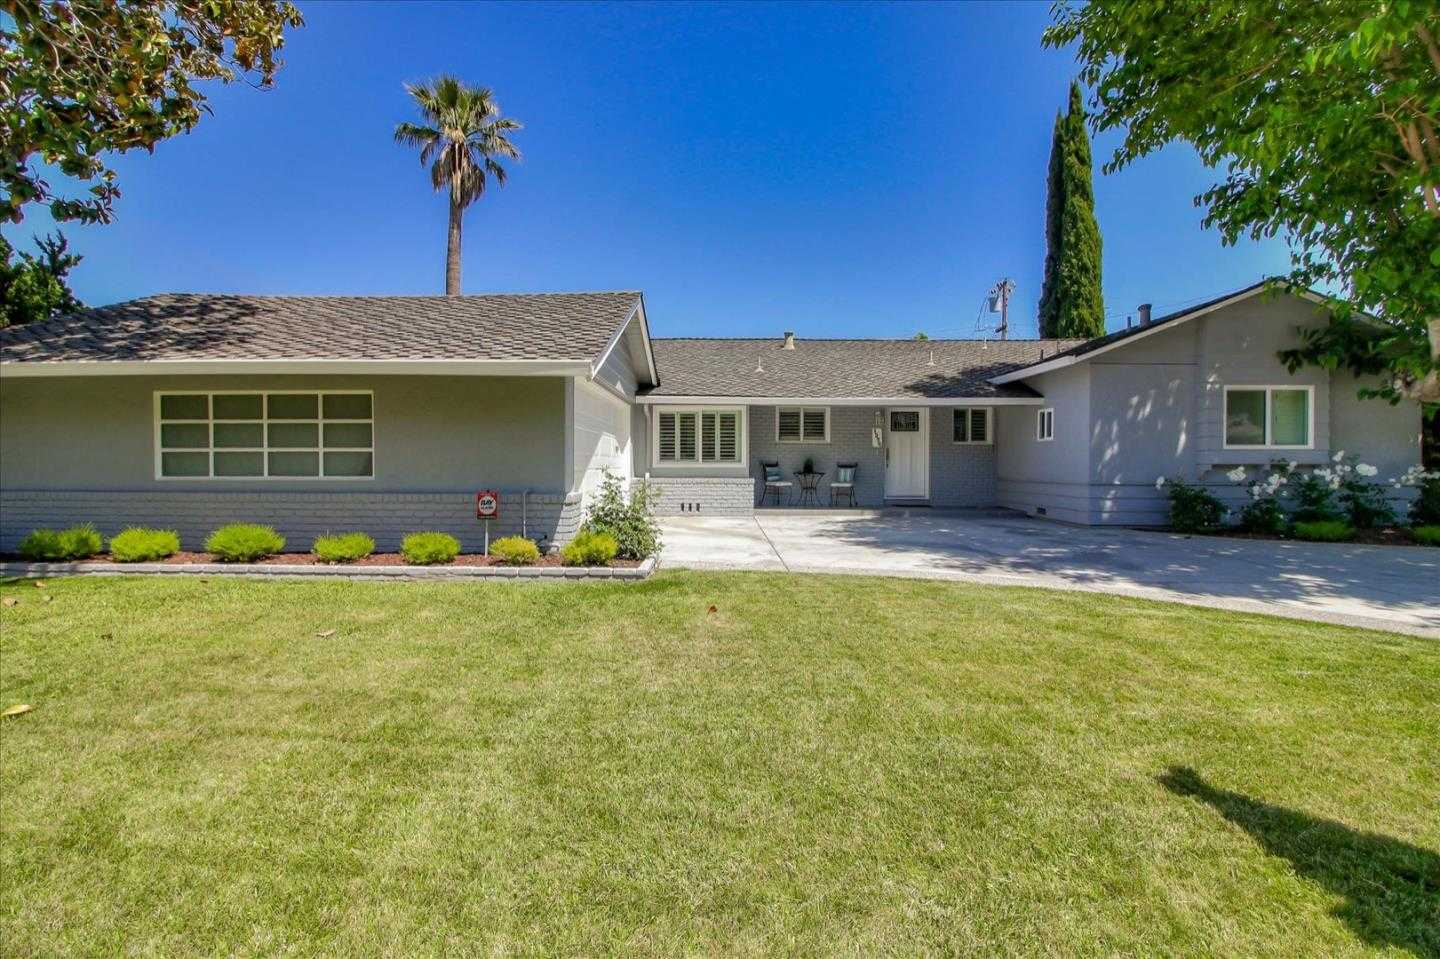 $1,850,000 - 3Br/3Ba -  for Sale in San Jose